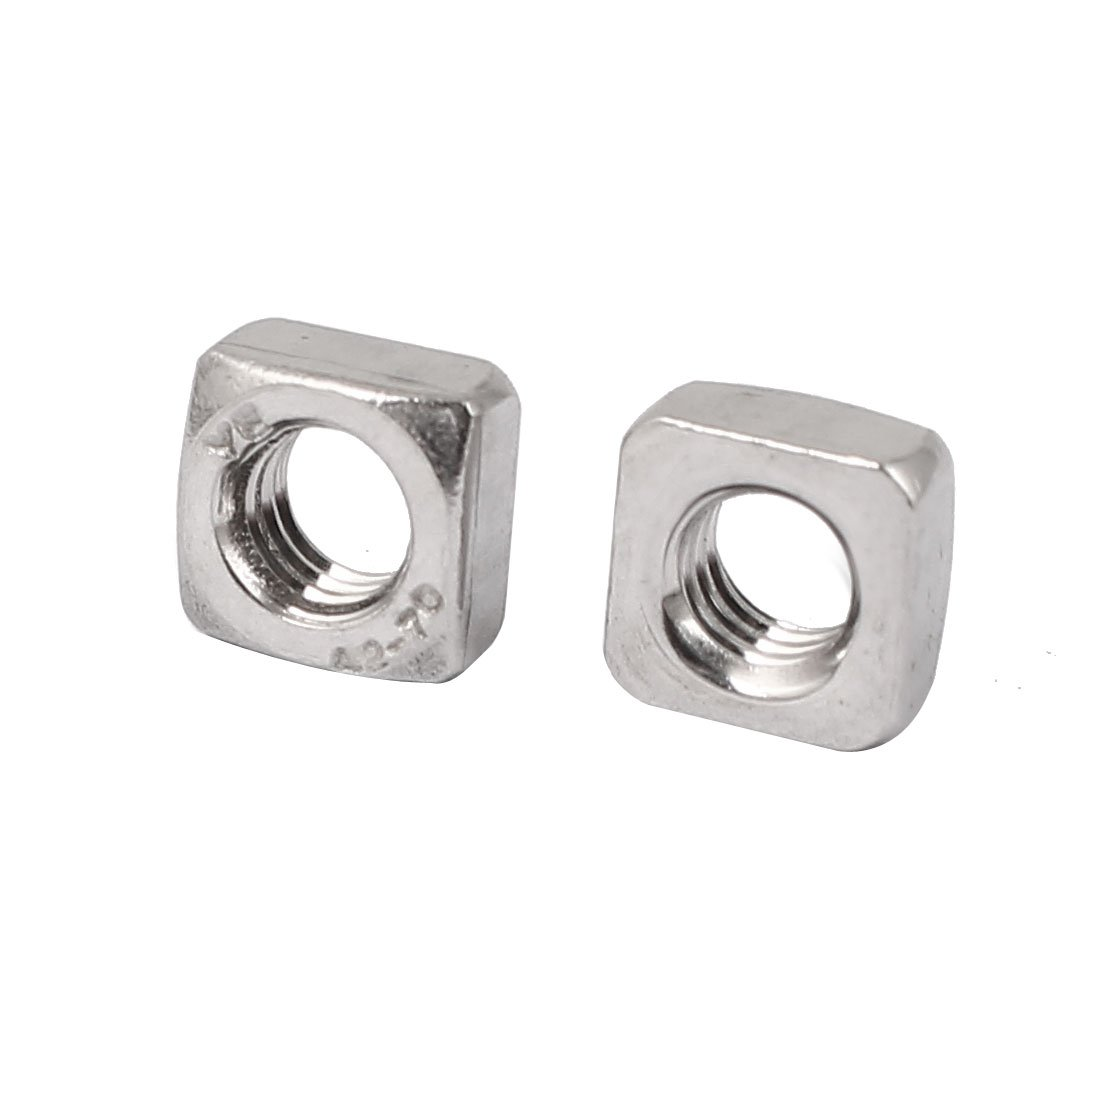 Uxcell a16033100ux0510 M5x8x4mm 304 Stainless Steel Square Machine Screw Nuts